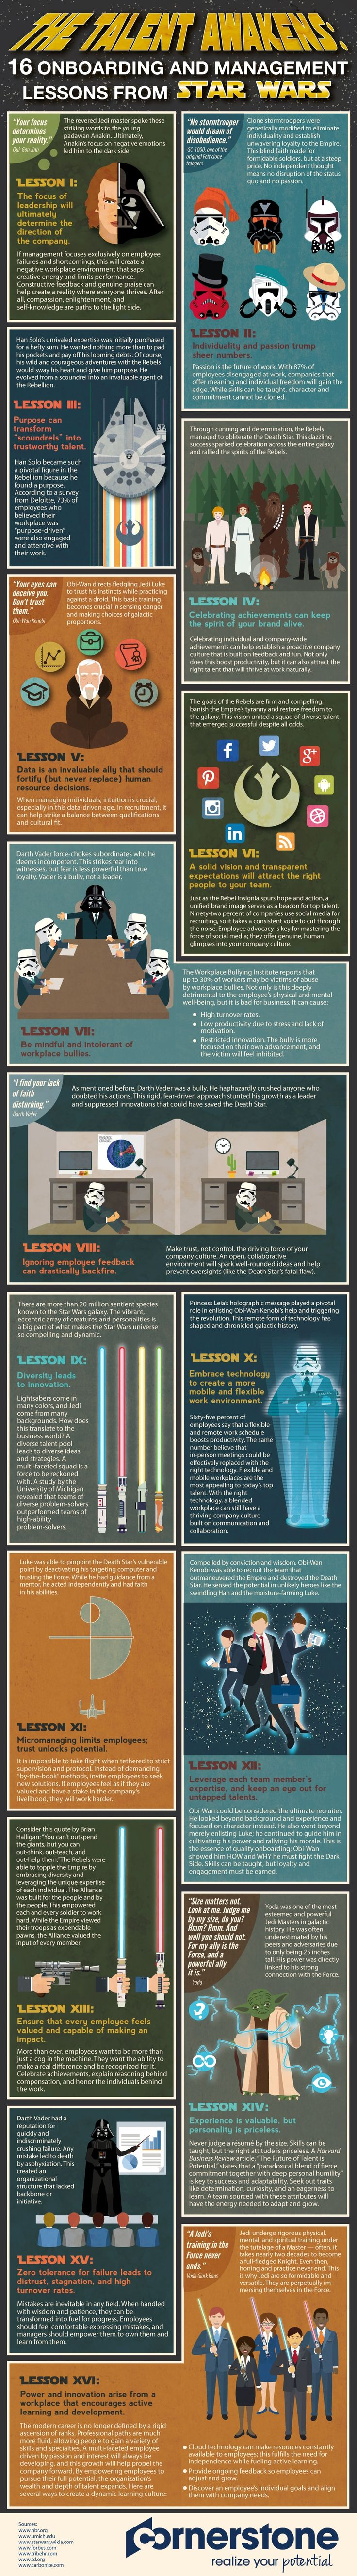 The Talent Awakens: 16 Onboarding and Management Lessons From Star Wars #infographic #Management #Starwars